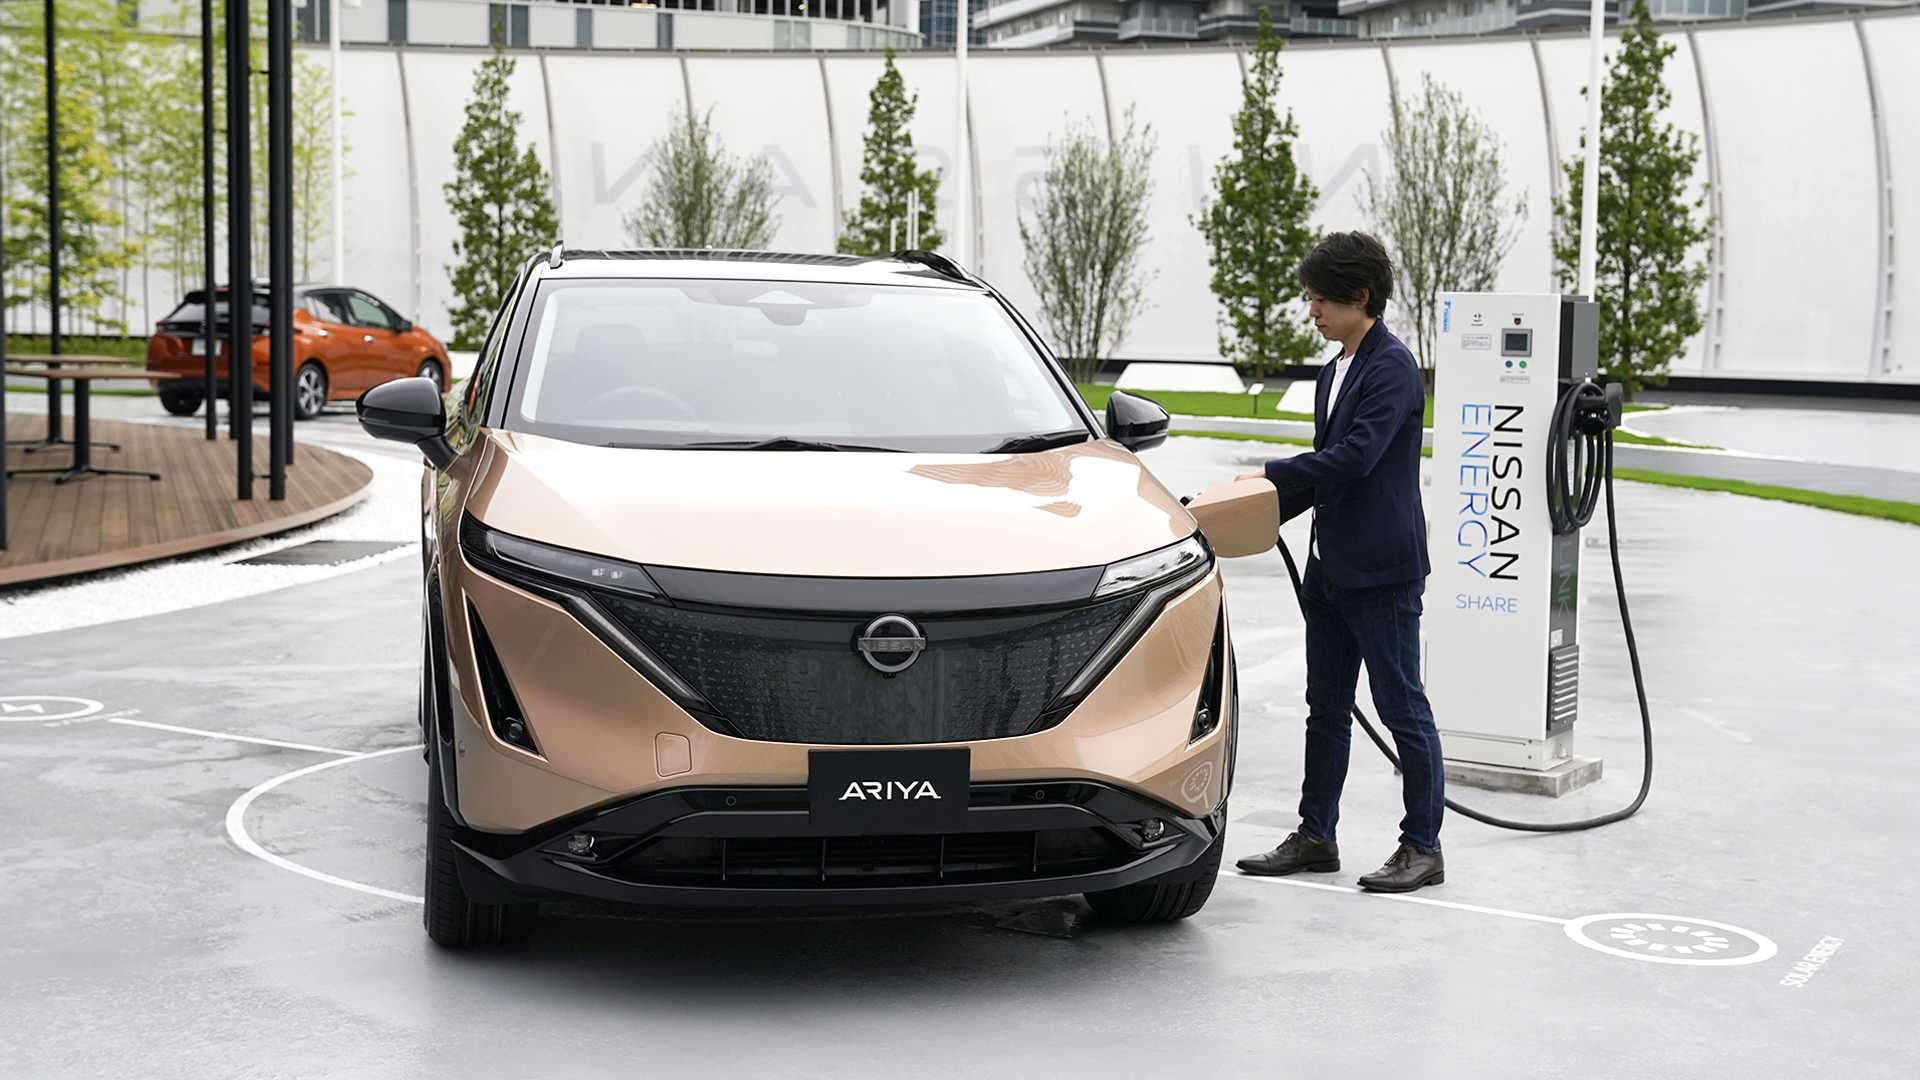 Nissan Leaf Ariya Could Be Joined By Larger Electric Suv